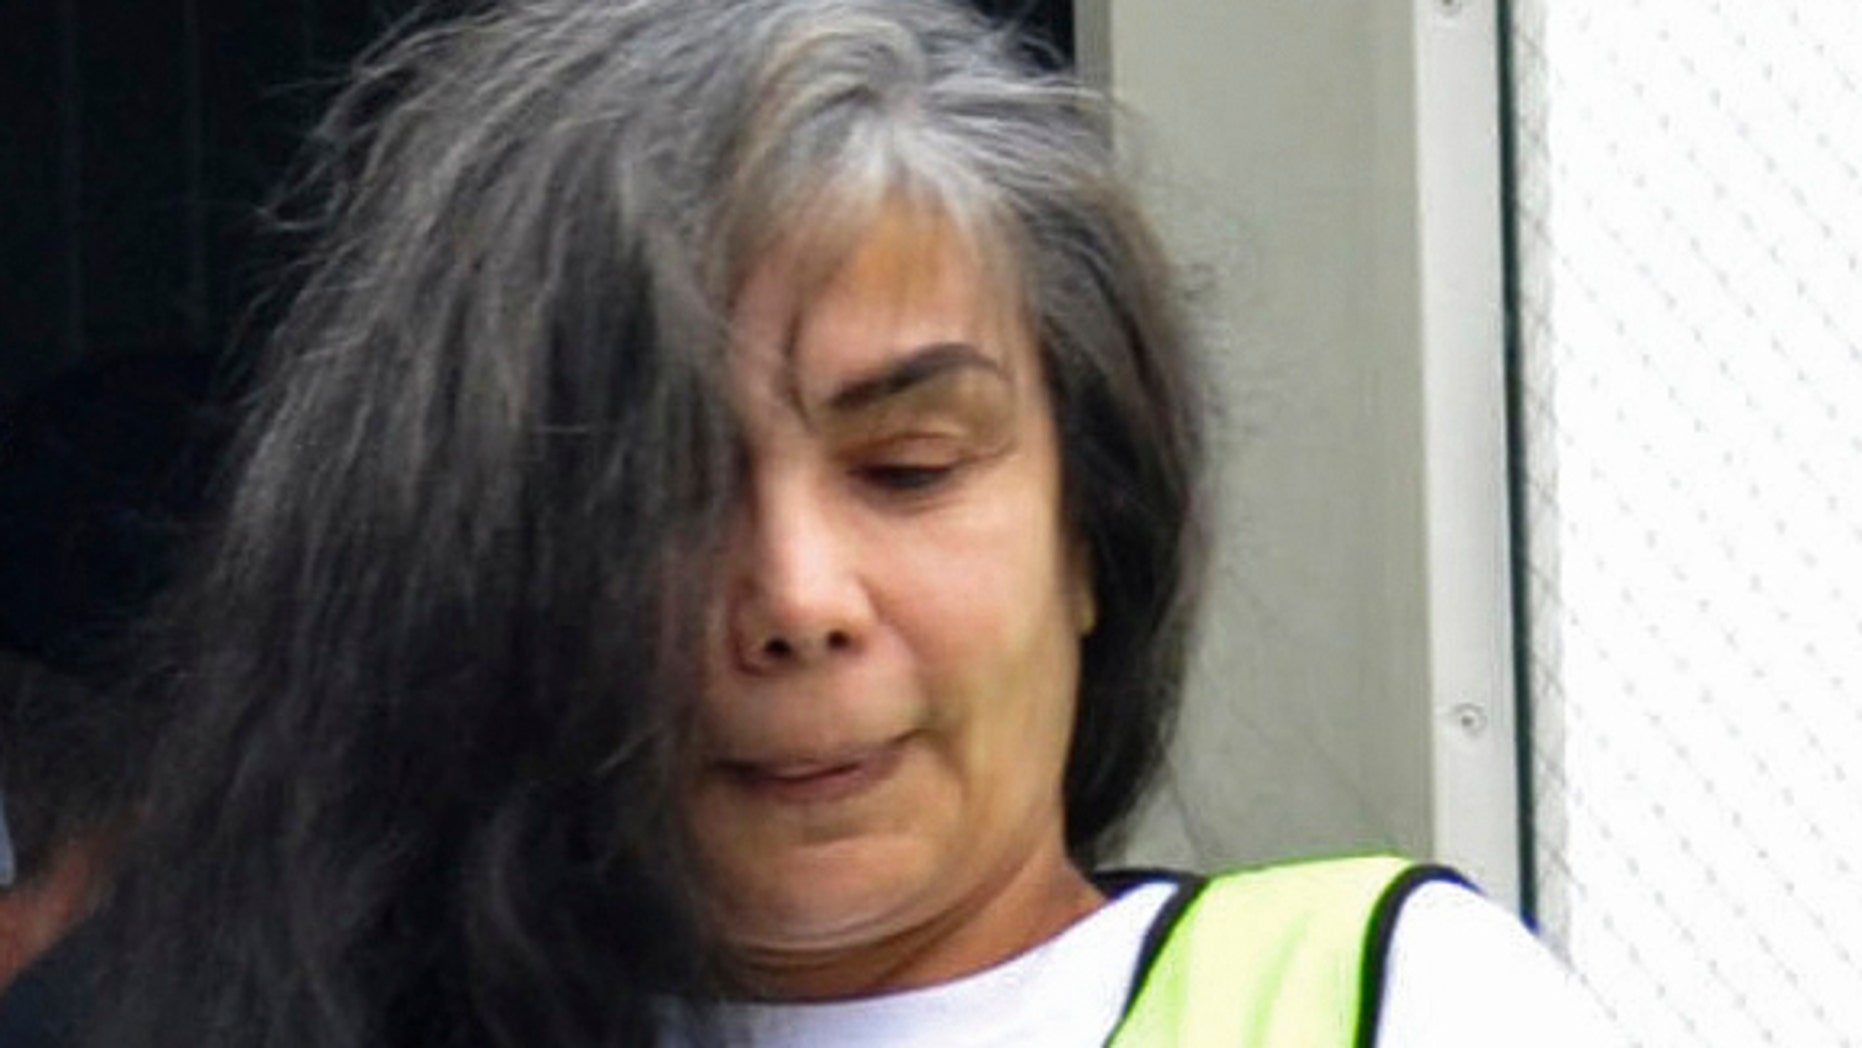 FILE - In this Aug. 20, 2013, file photo, provided by Mexico's Interior Department shows Sandra Avila Beltran in handcuffs as she is escorted by federal authorities upon arrival to Benito Juarez airport in Mexico City. A Mexican federal judge has thrown out a five-year, money-laundering sentence against Avila, ordering the immediate release of the so-called Queen of the Pacific for her alleged role as a liaison between Mexican and Colombian cartels. A statement issued Saturday Feb. 7, 2015, by the Attorney Generals Office says the judge ruled that Avila had already been tried for the same crime in Mexico and the United States. (AP Photo/Mexico Interior Department, File)